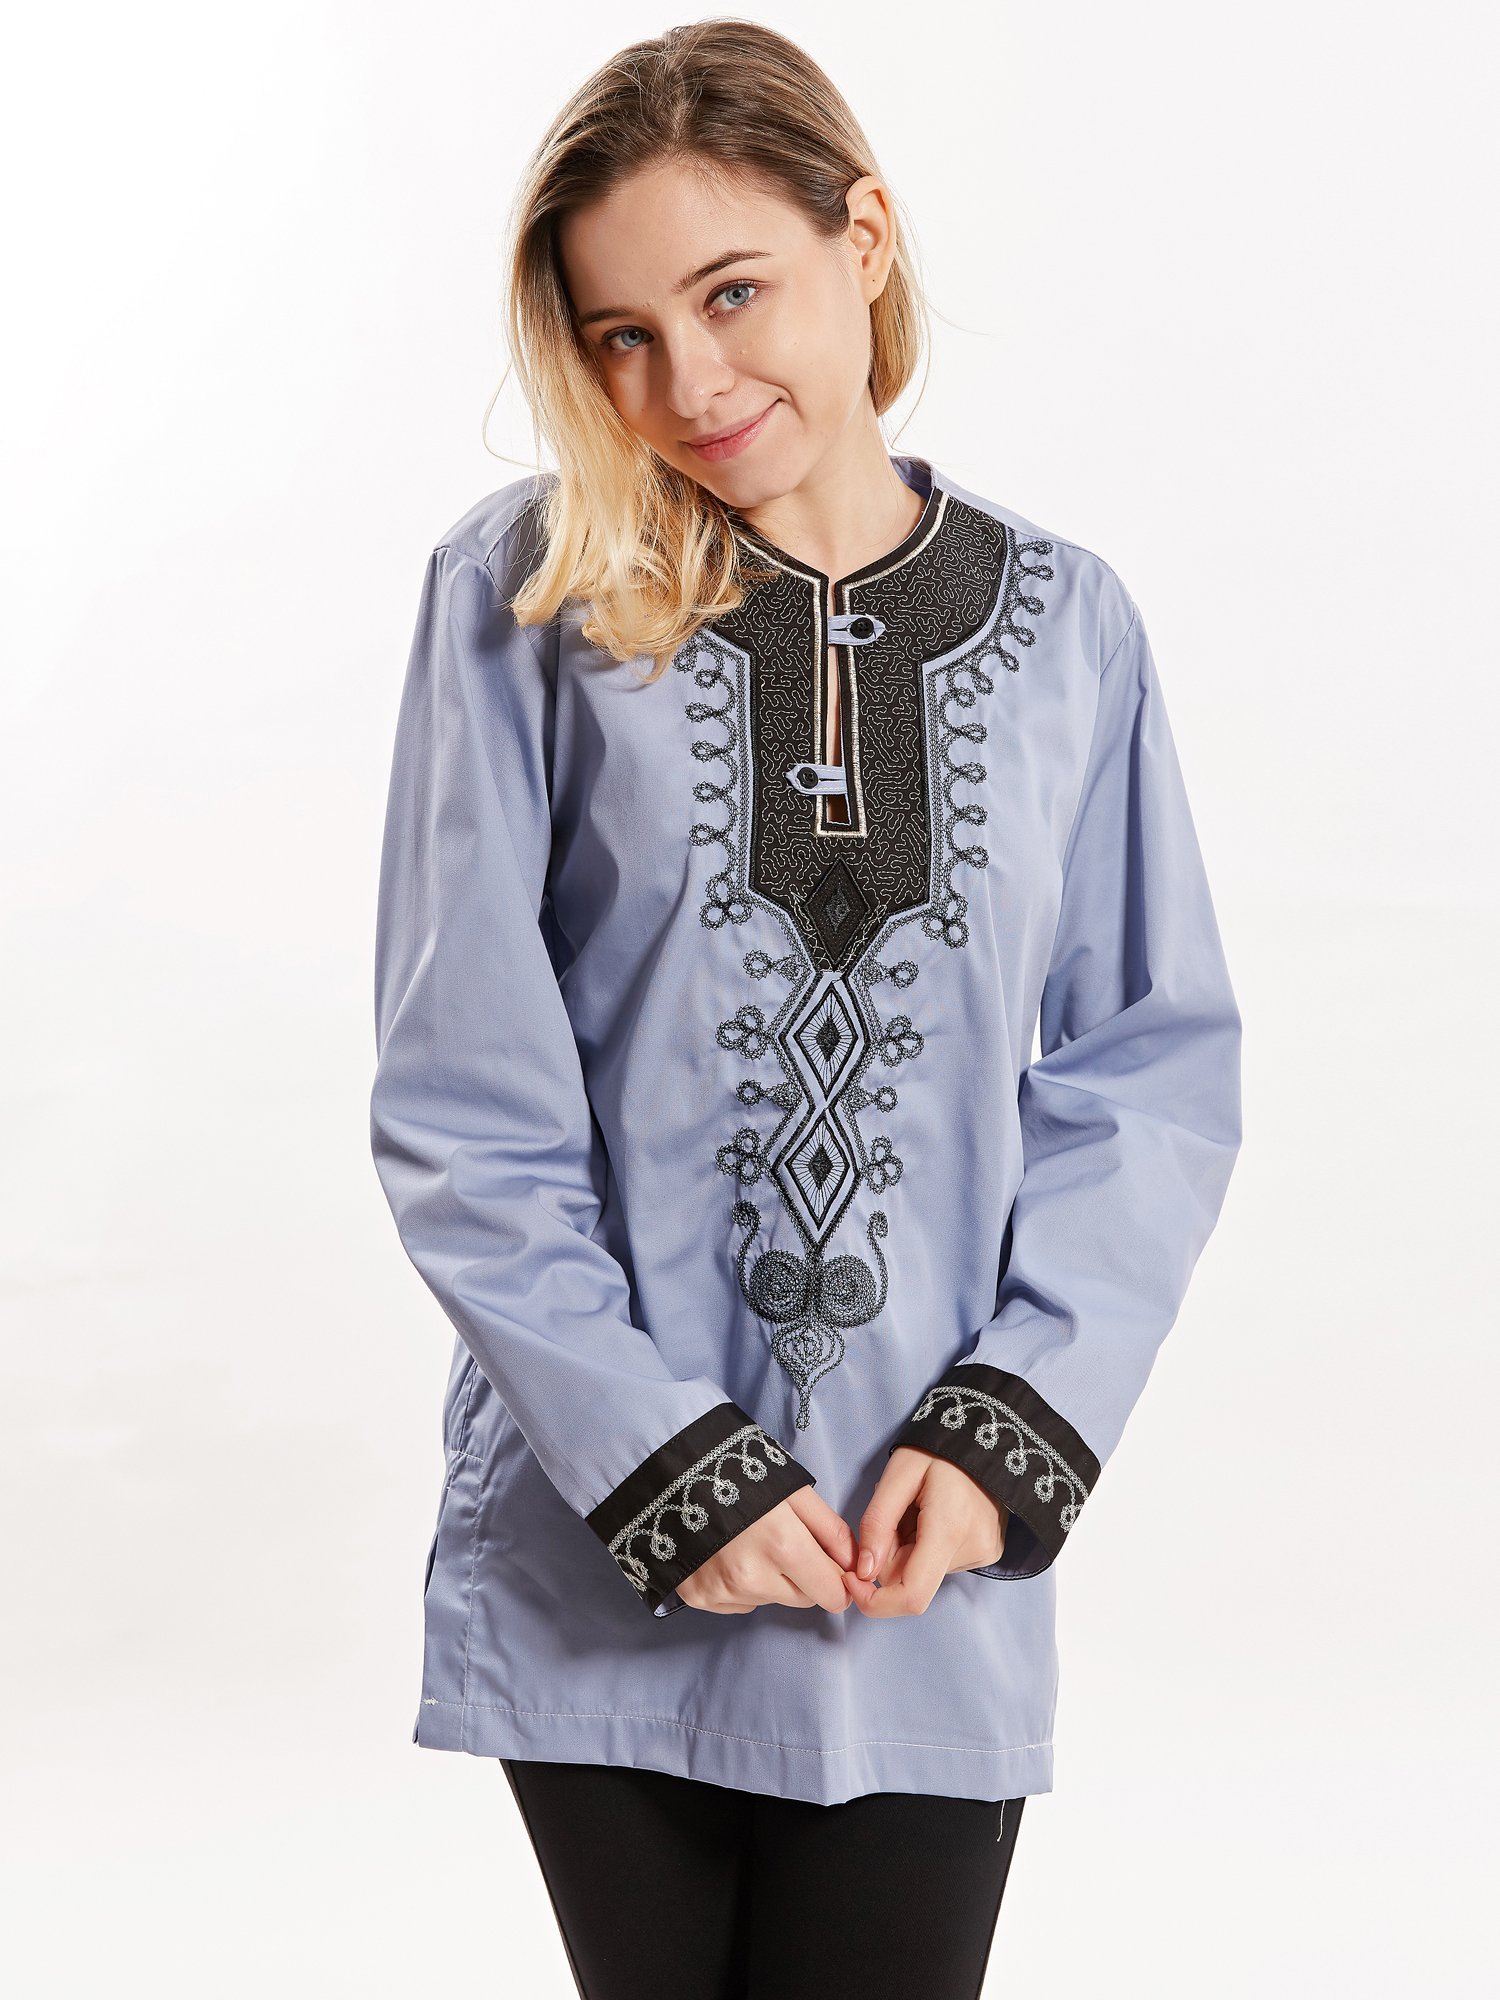 Casual Silk Material Long Sleeve & Round Neck Blouse with Embroidery